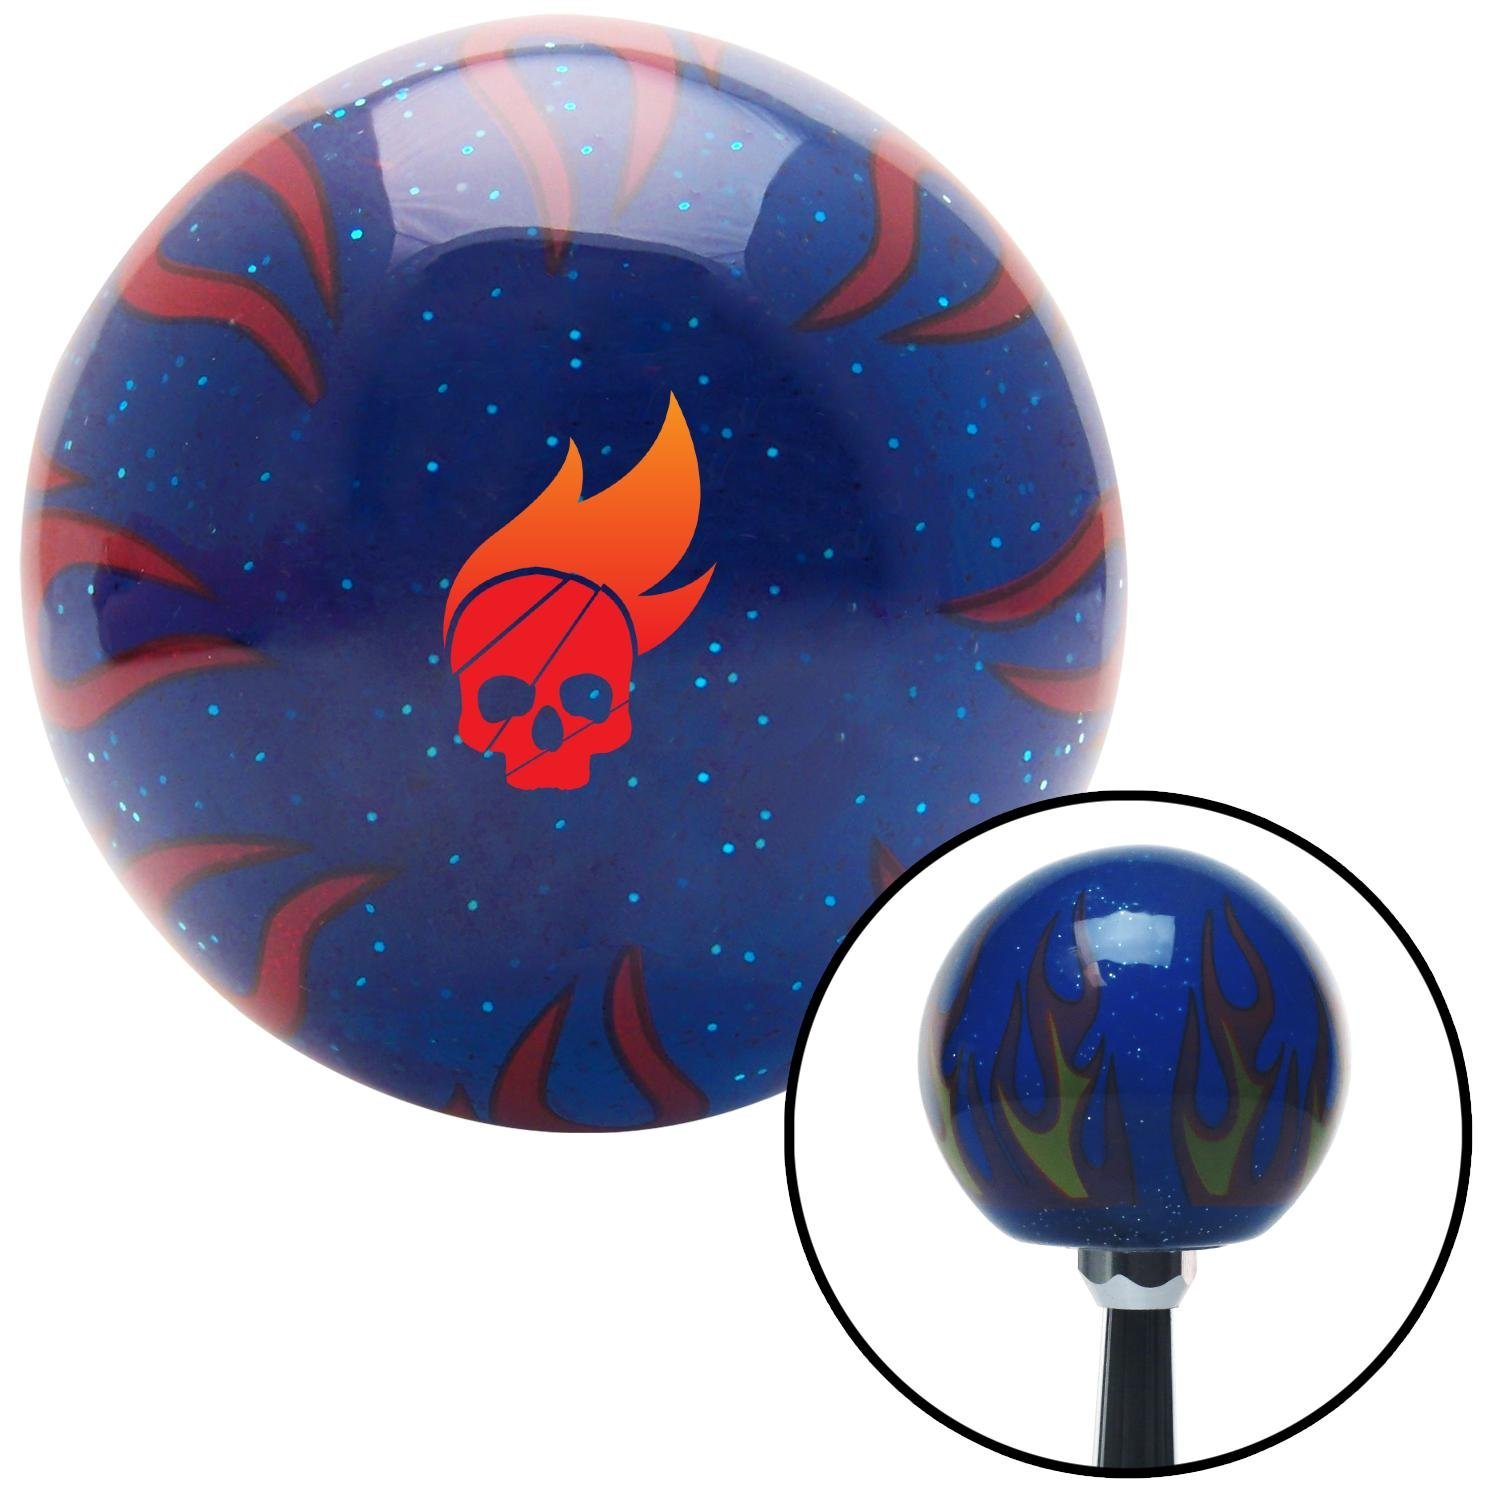 American Shifter 256171 Orange Flame Metal Flake Shift Knob with M16 x 1.5 Insert Blue Curvy Road